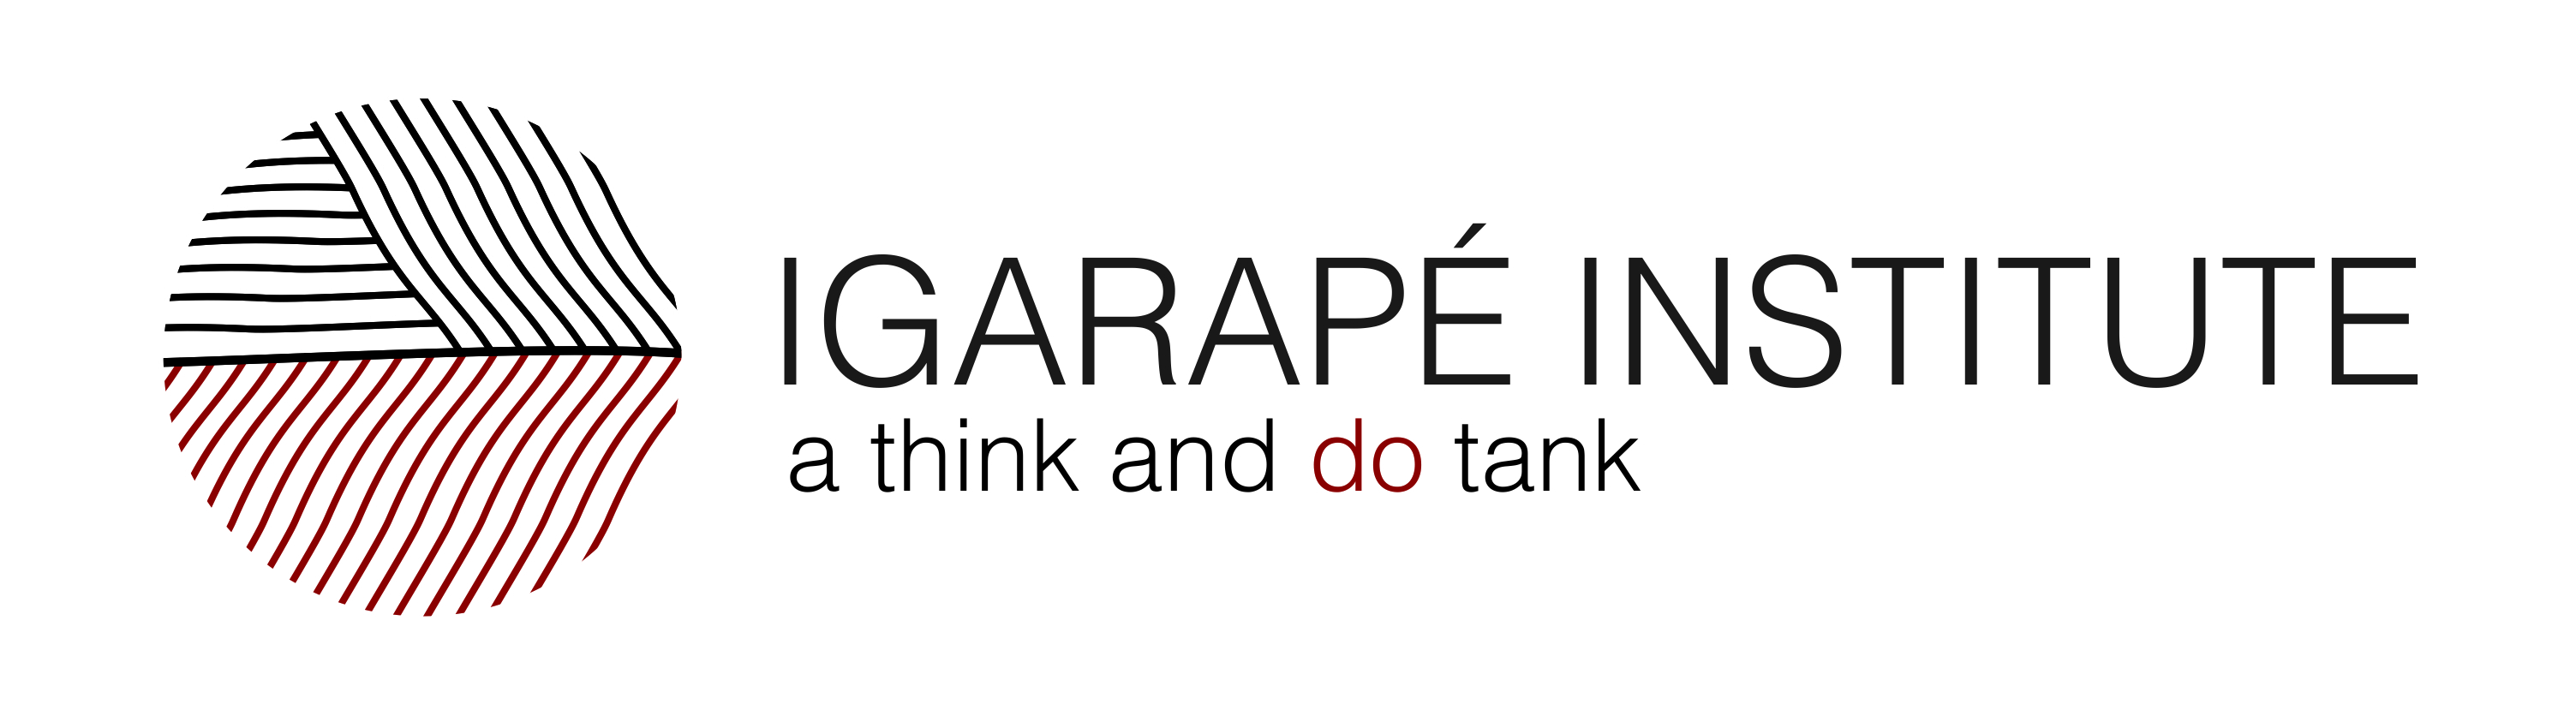 Instituto Igarapé - a think and do tank